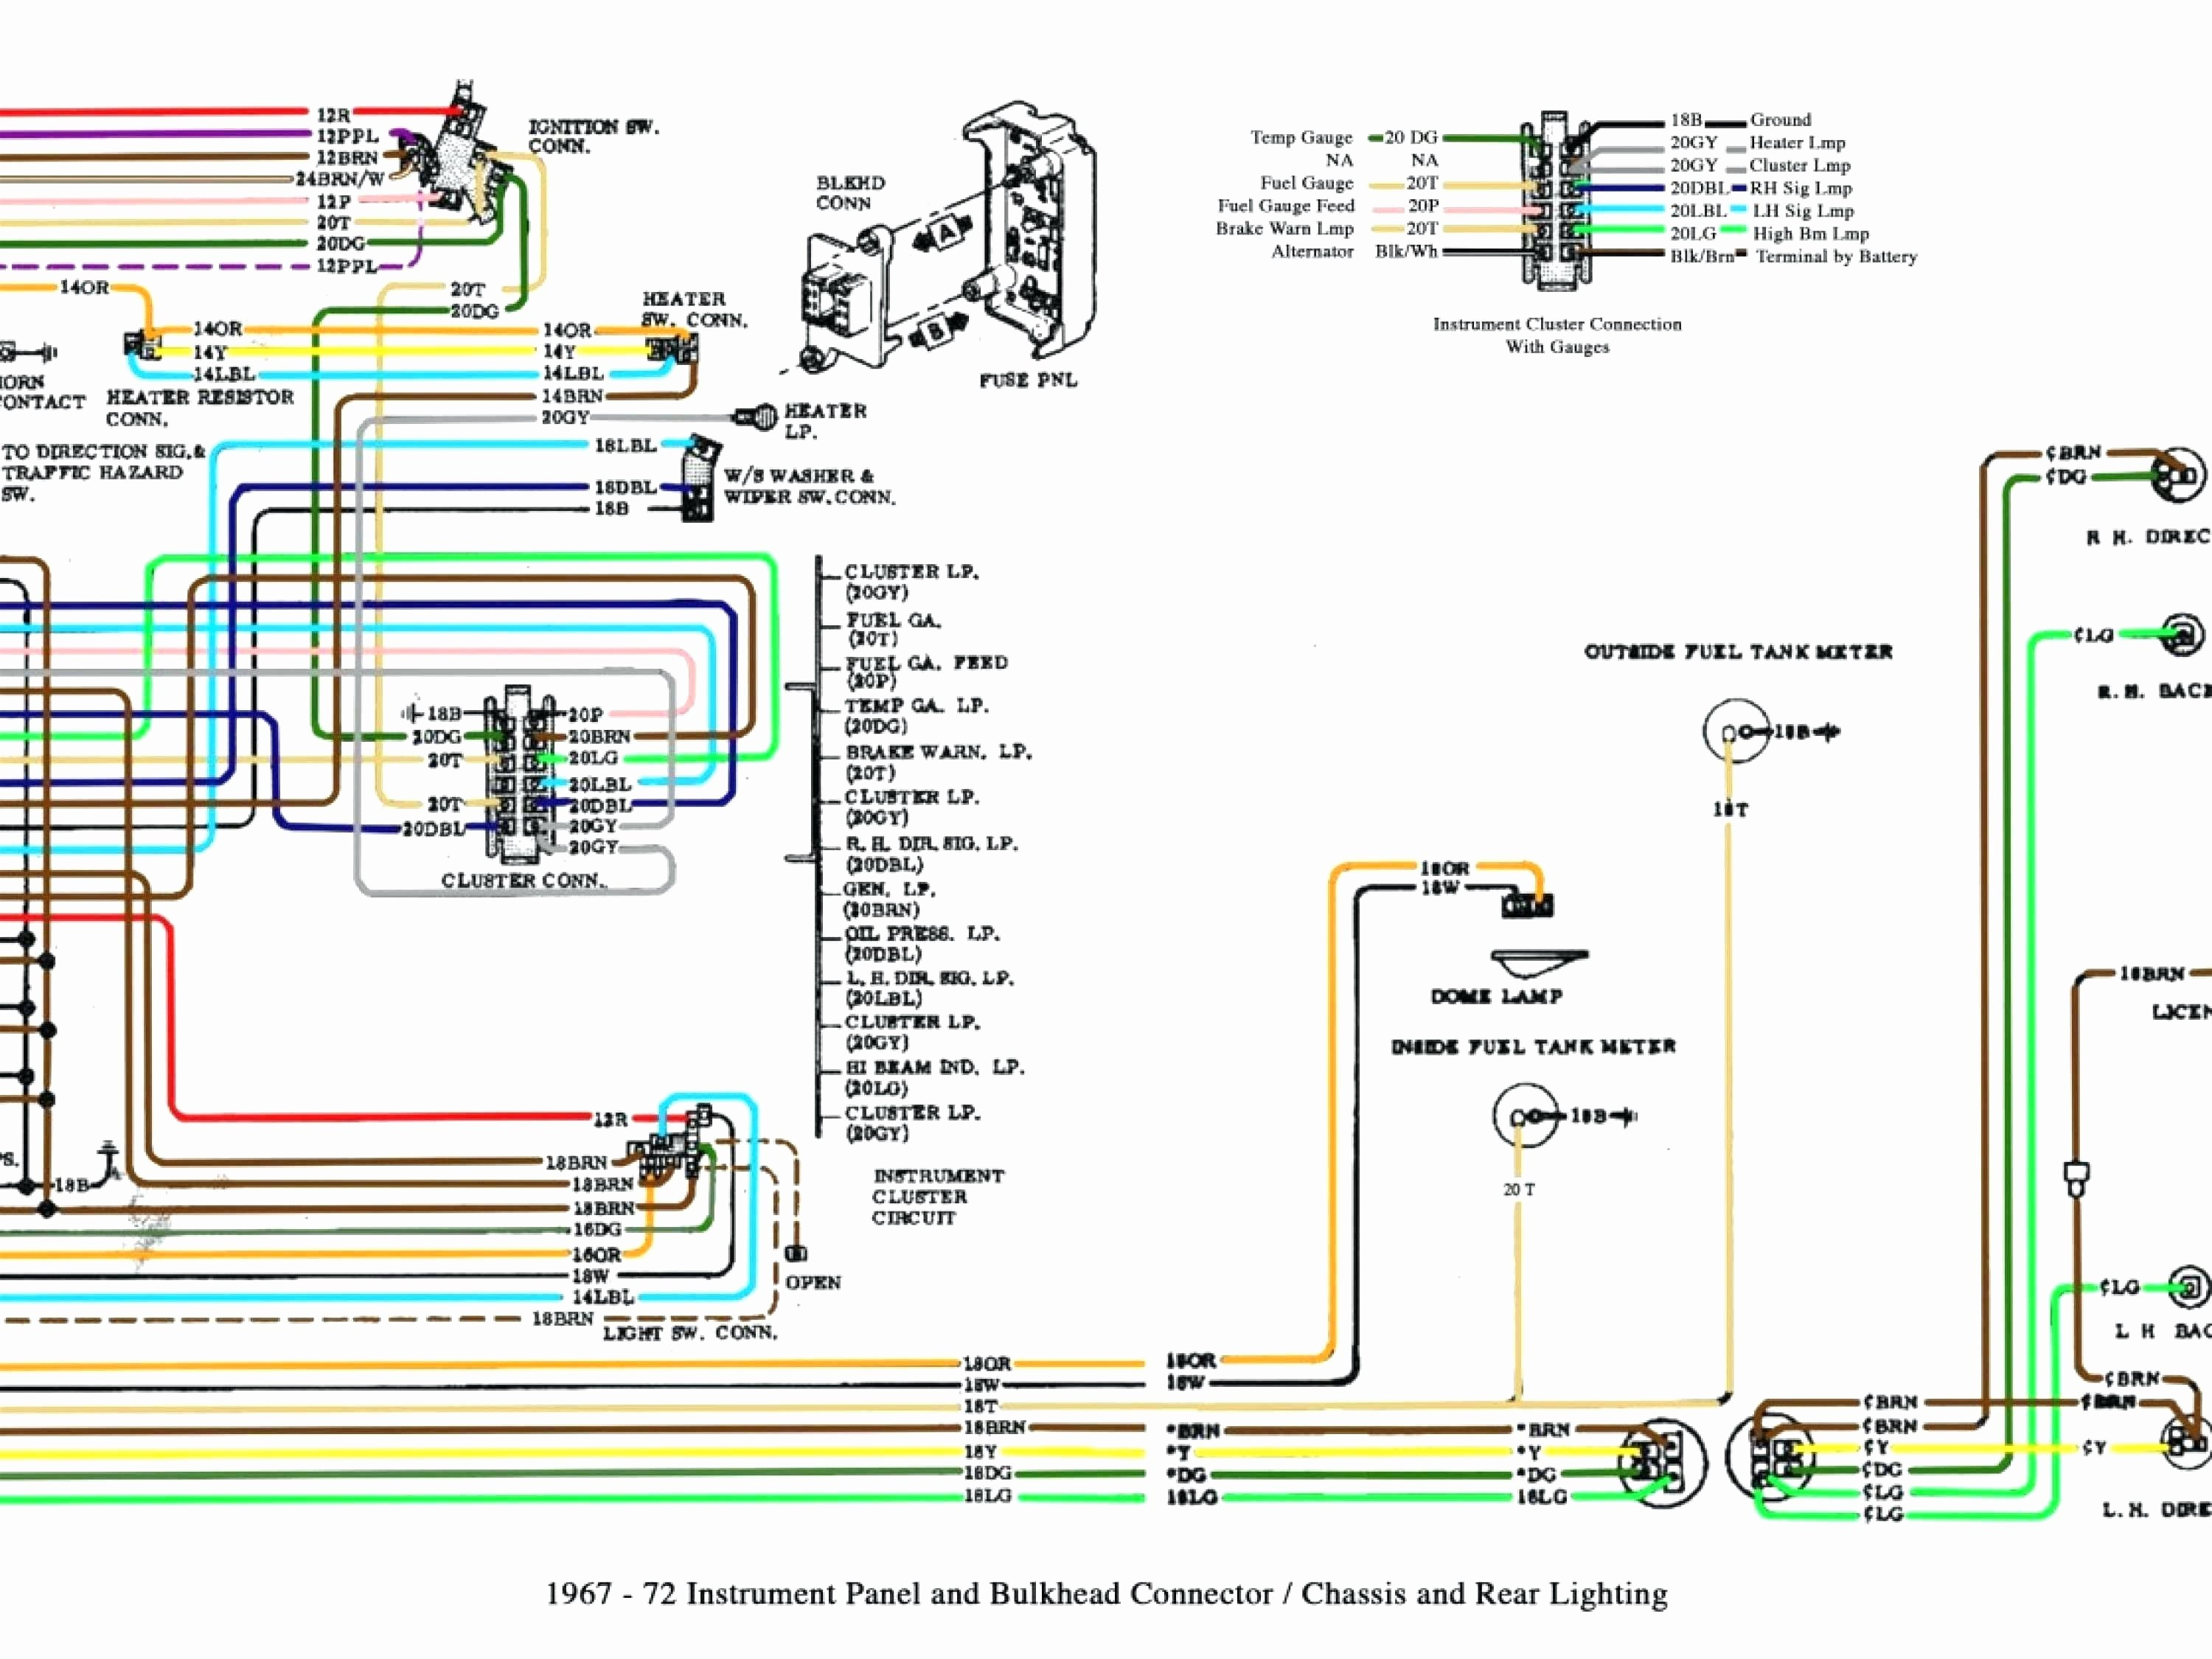 2004 gmc sierra wiring diagram - fender standard stratocaster wiring diagram  for wiring diagram schematics  wiring diagram schematics